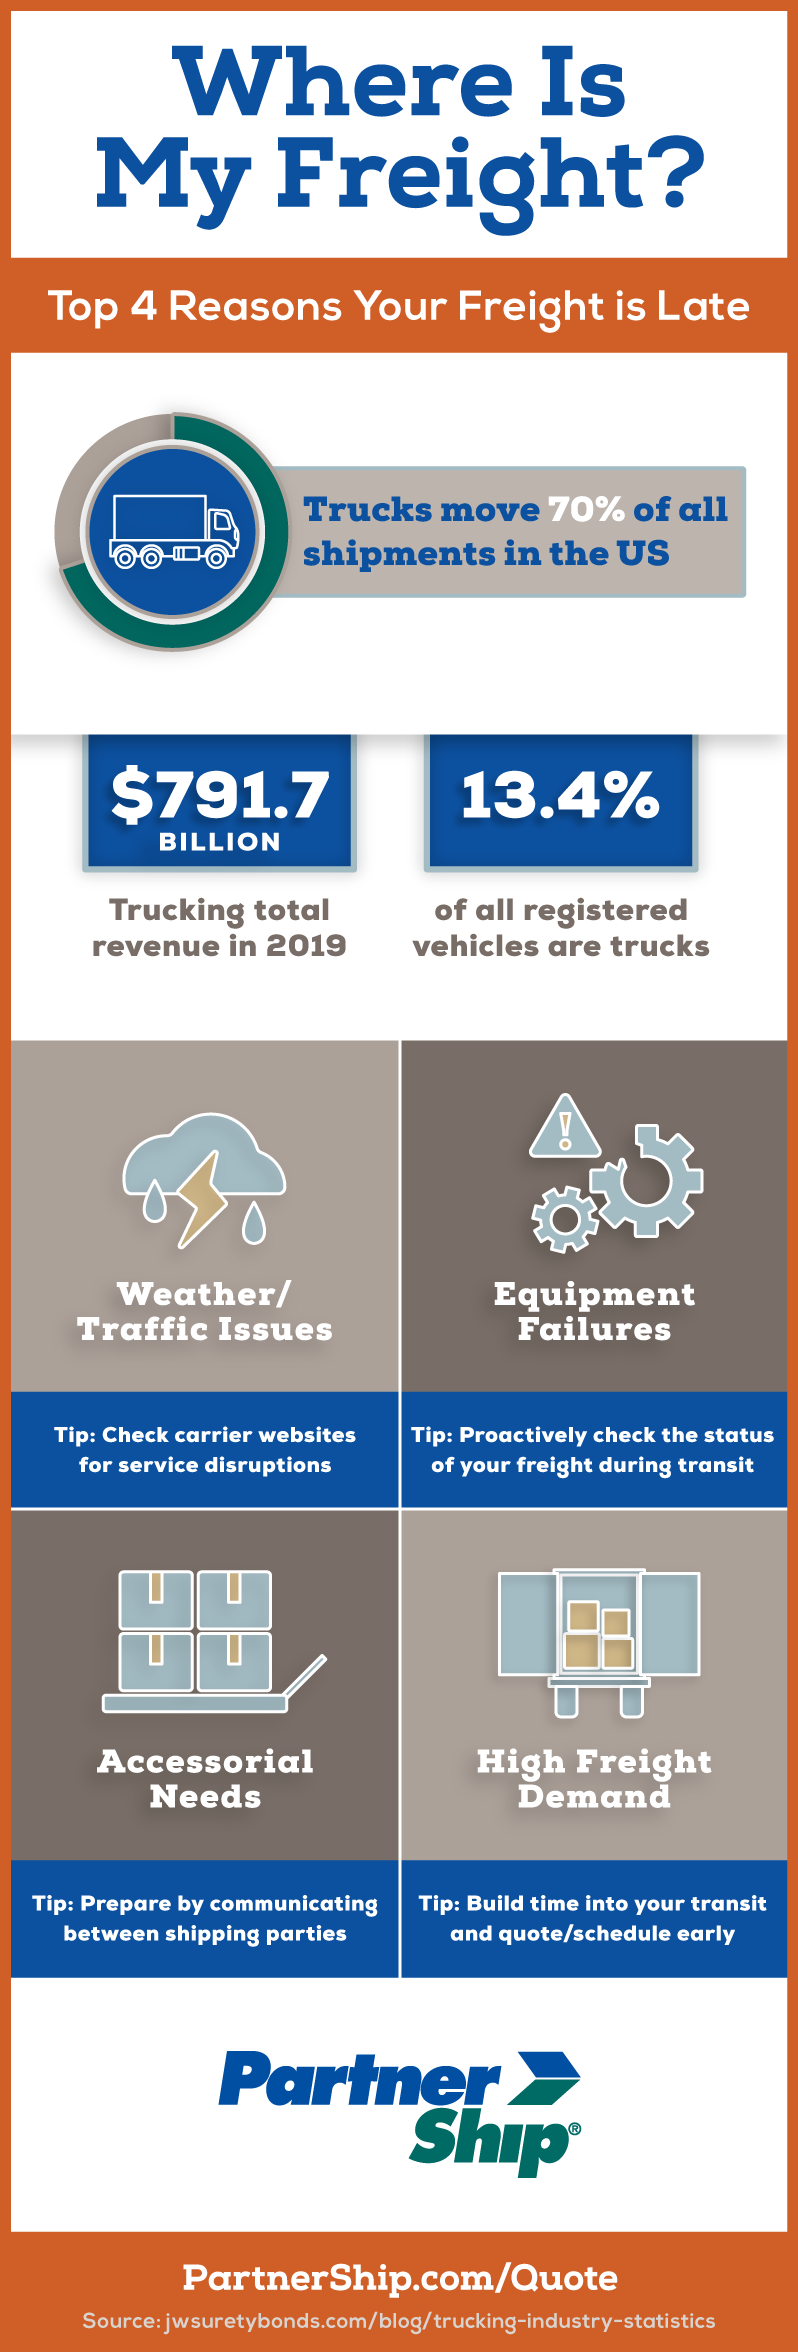 Freight Delay Infographic